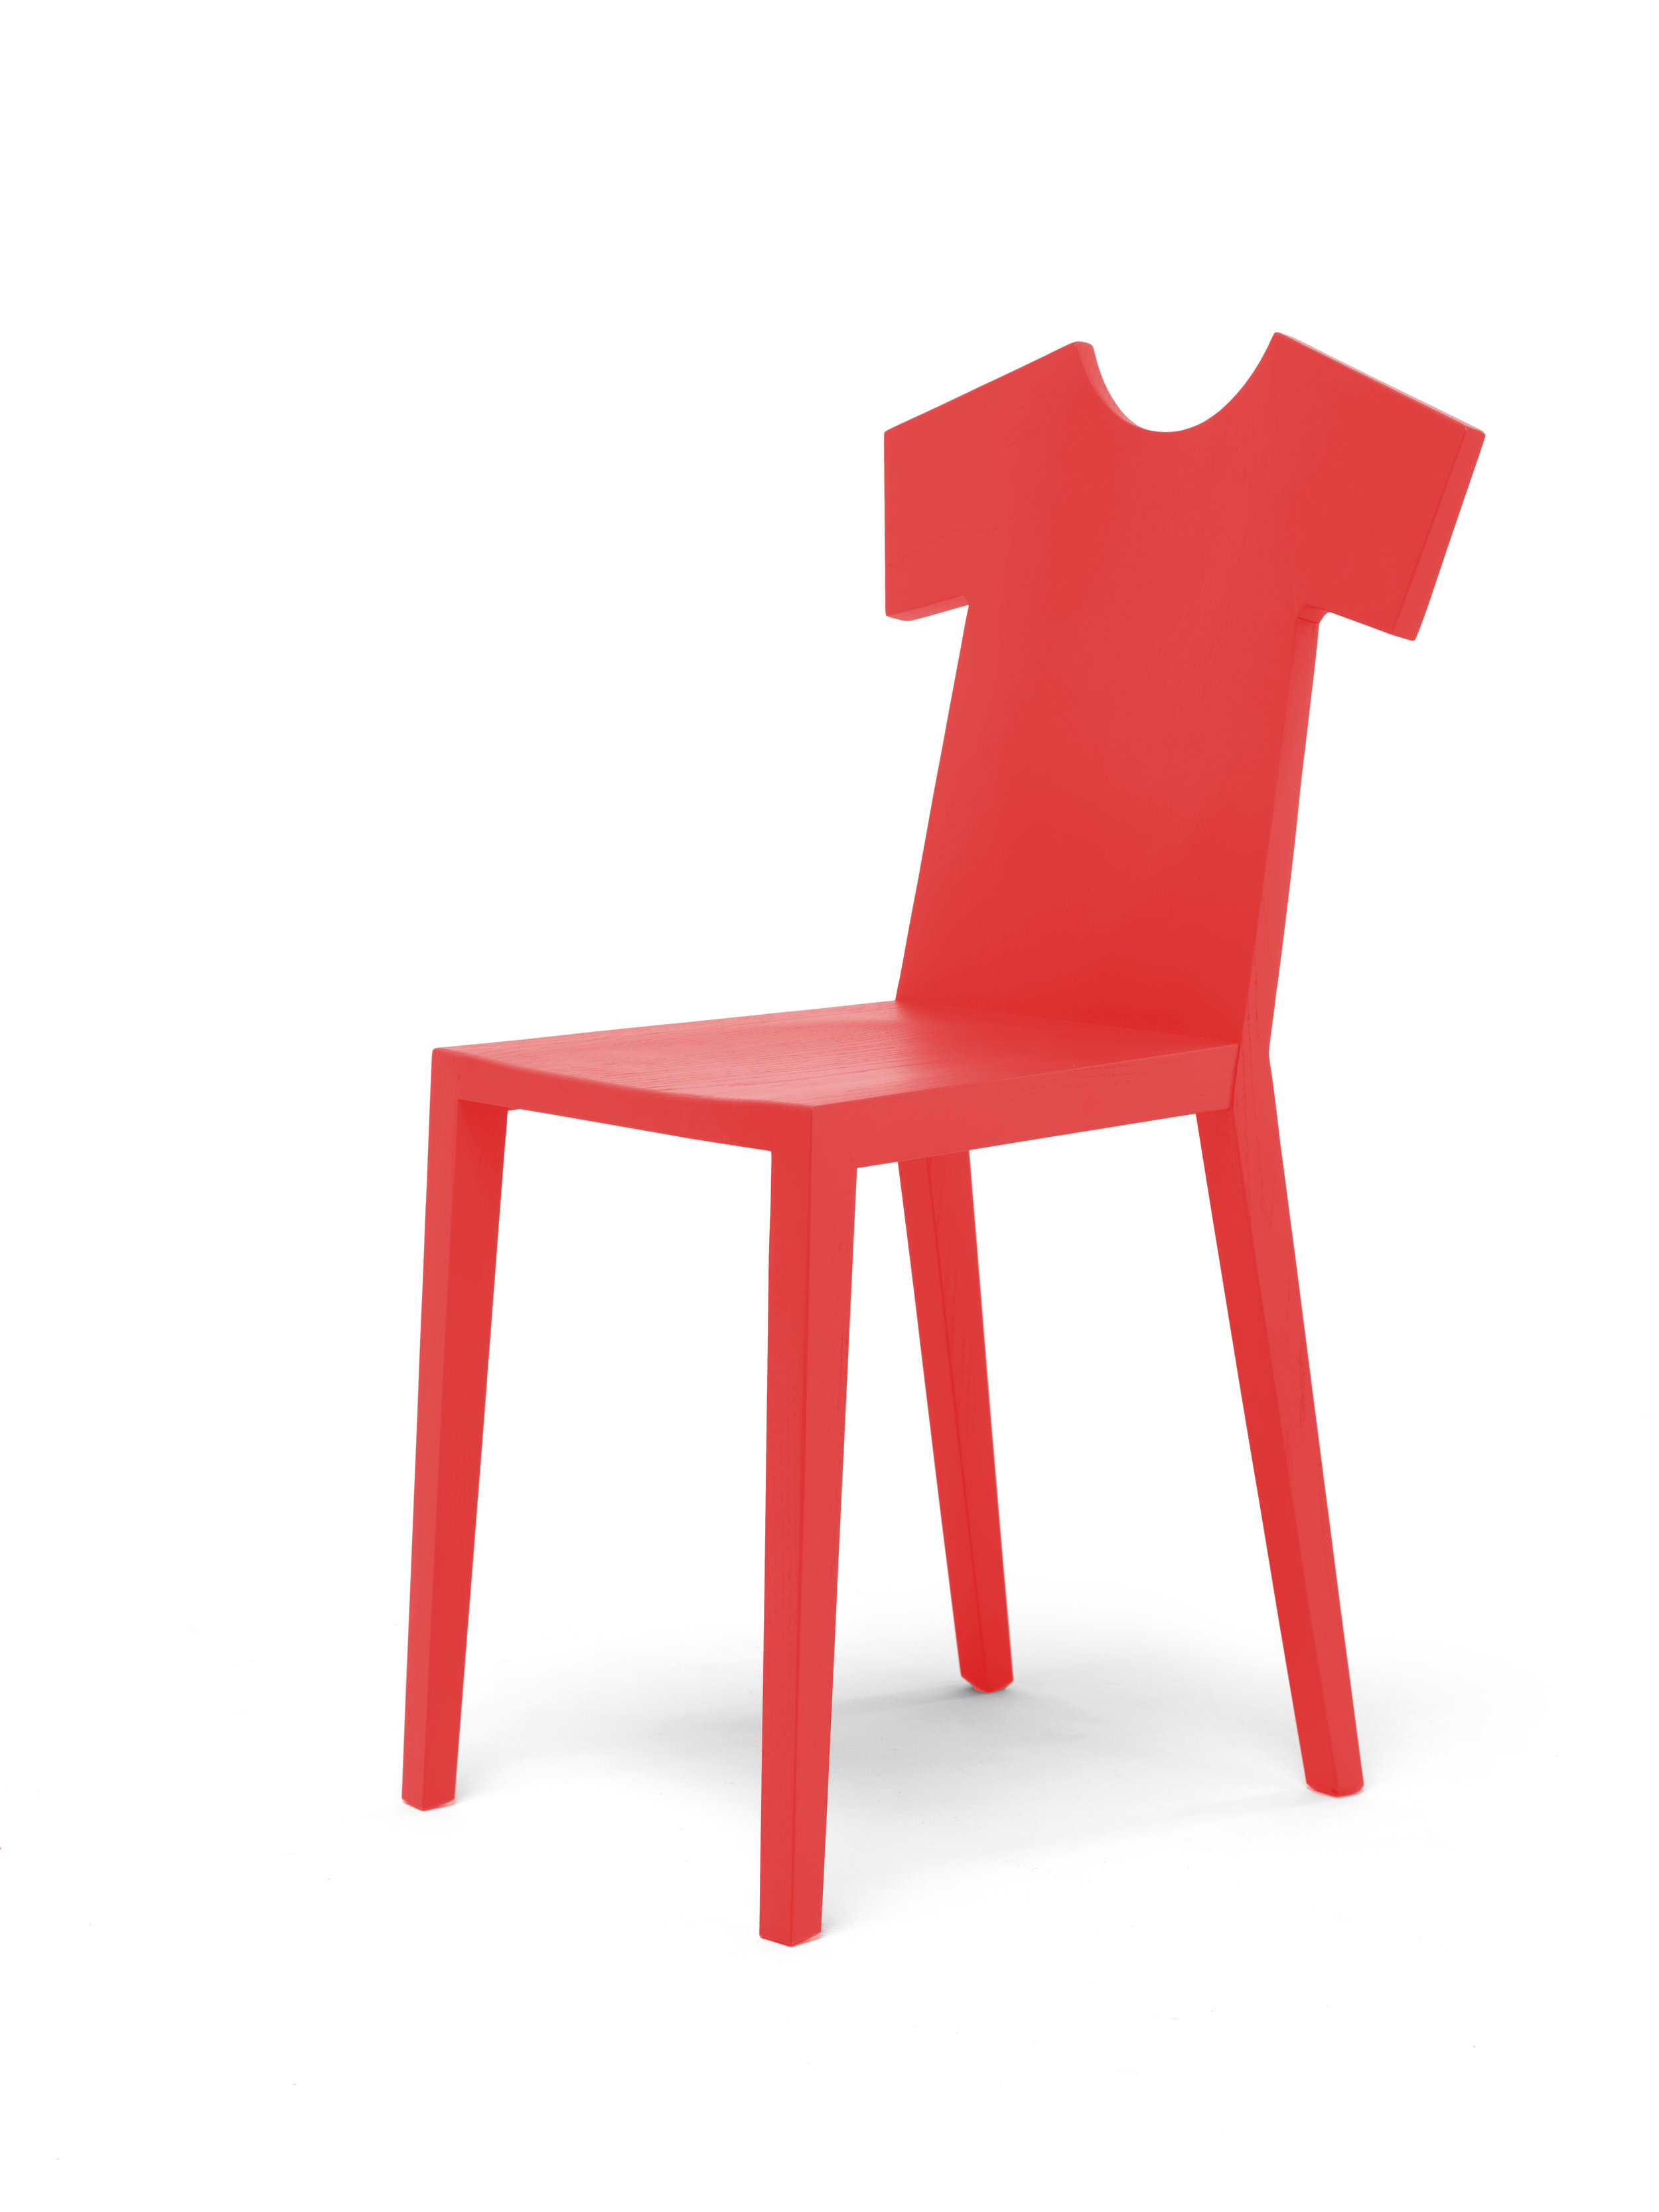 T-chair in fluo red.jpg